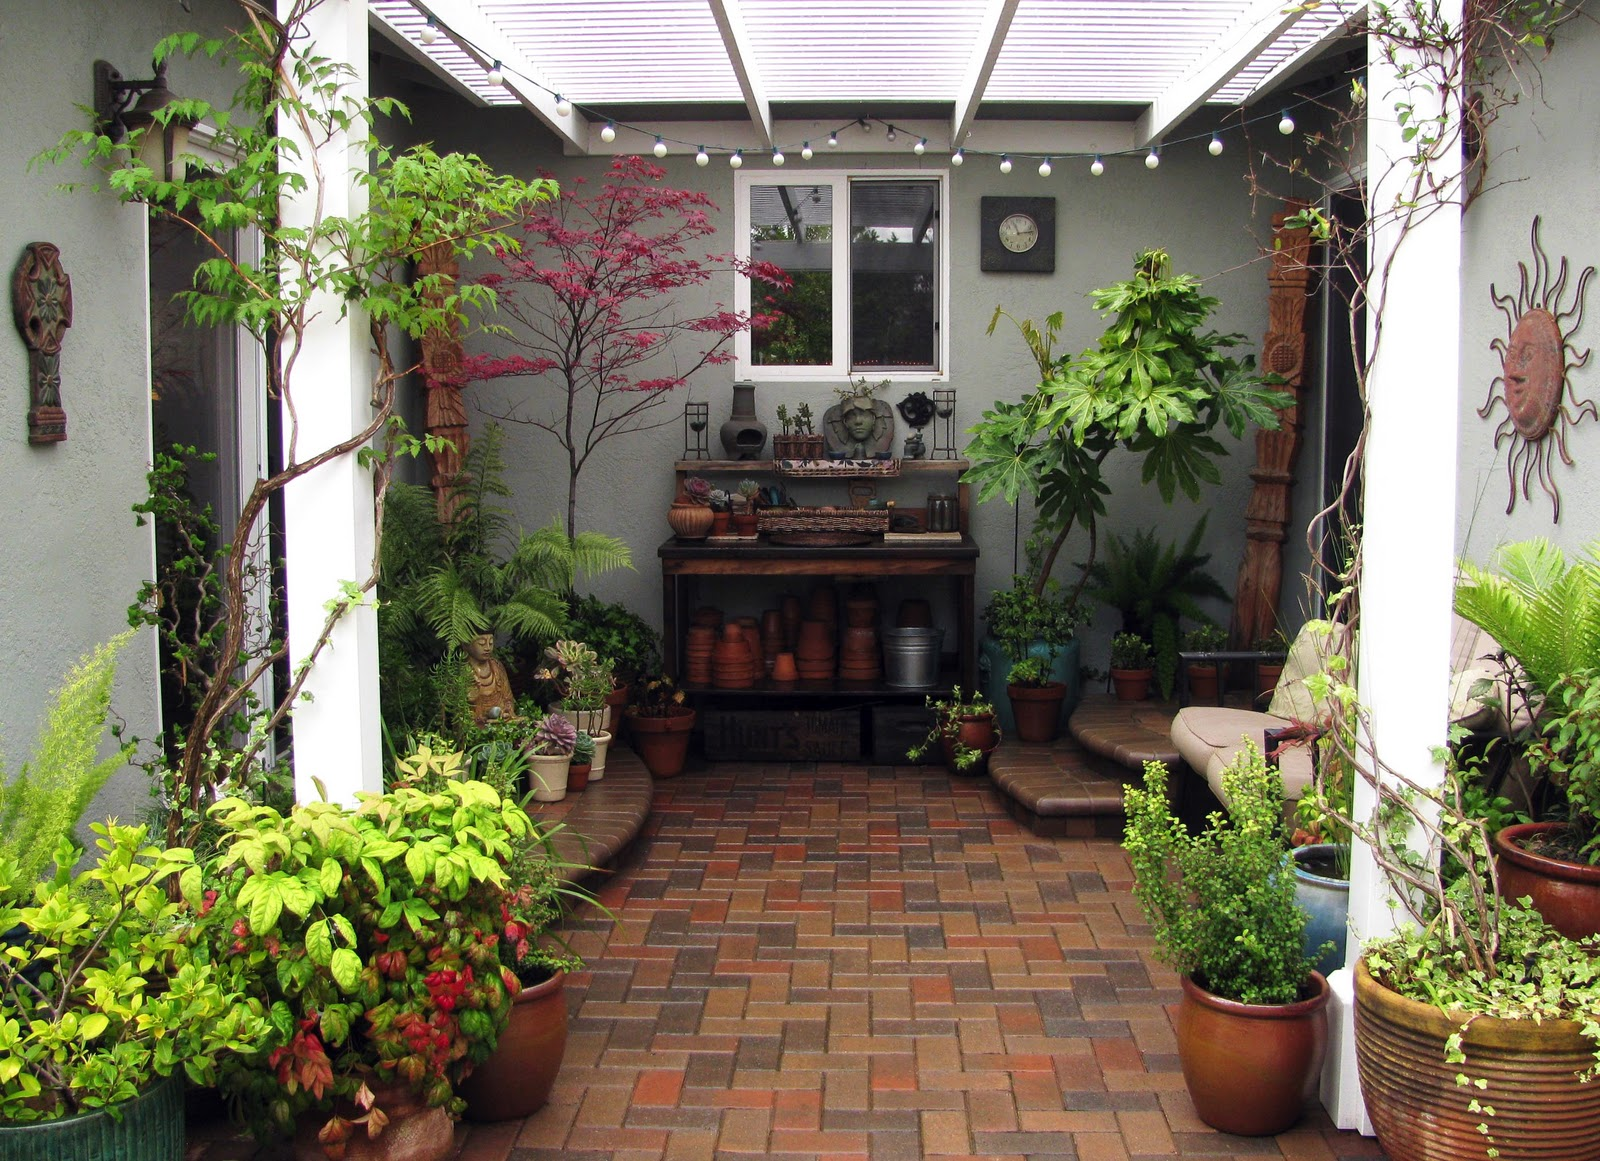 Interleafings garden designers roundtable expanding for Outdoor garden ideas for small spaces